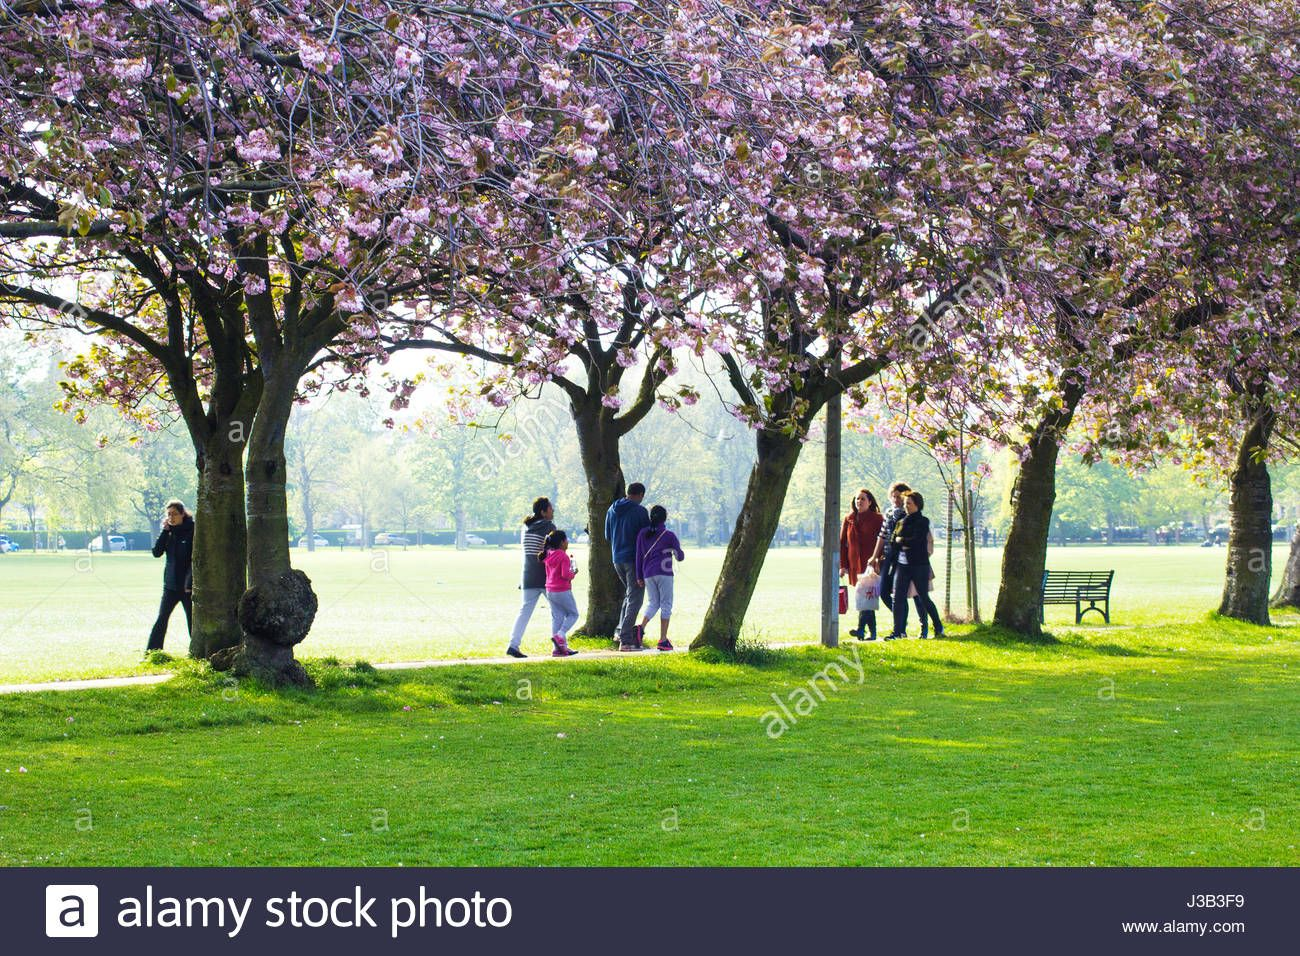 Pretty In Pink Scotland S Cherry Blossom Explosion Flowers Uk Scotland Places To Visit Pretty In Pink